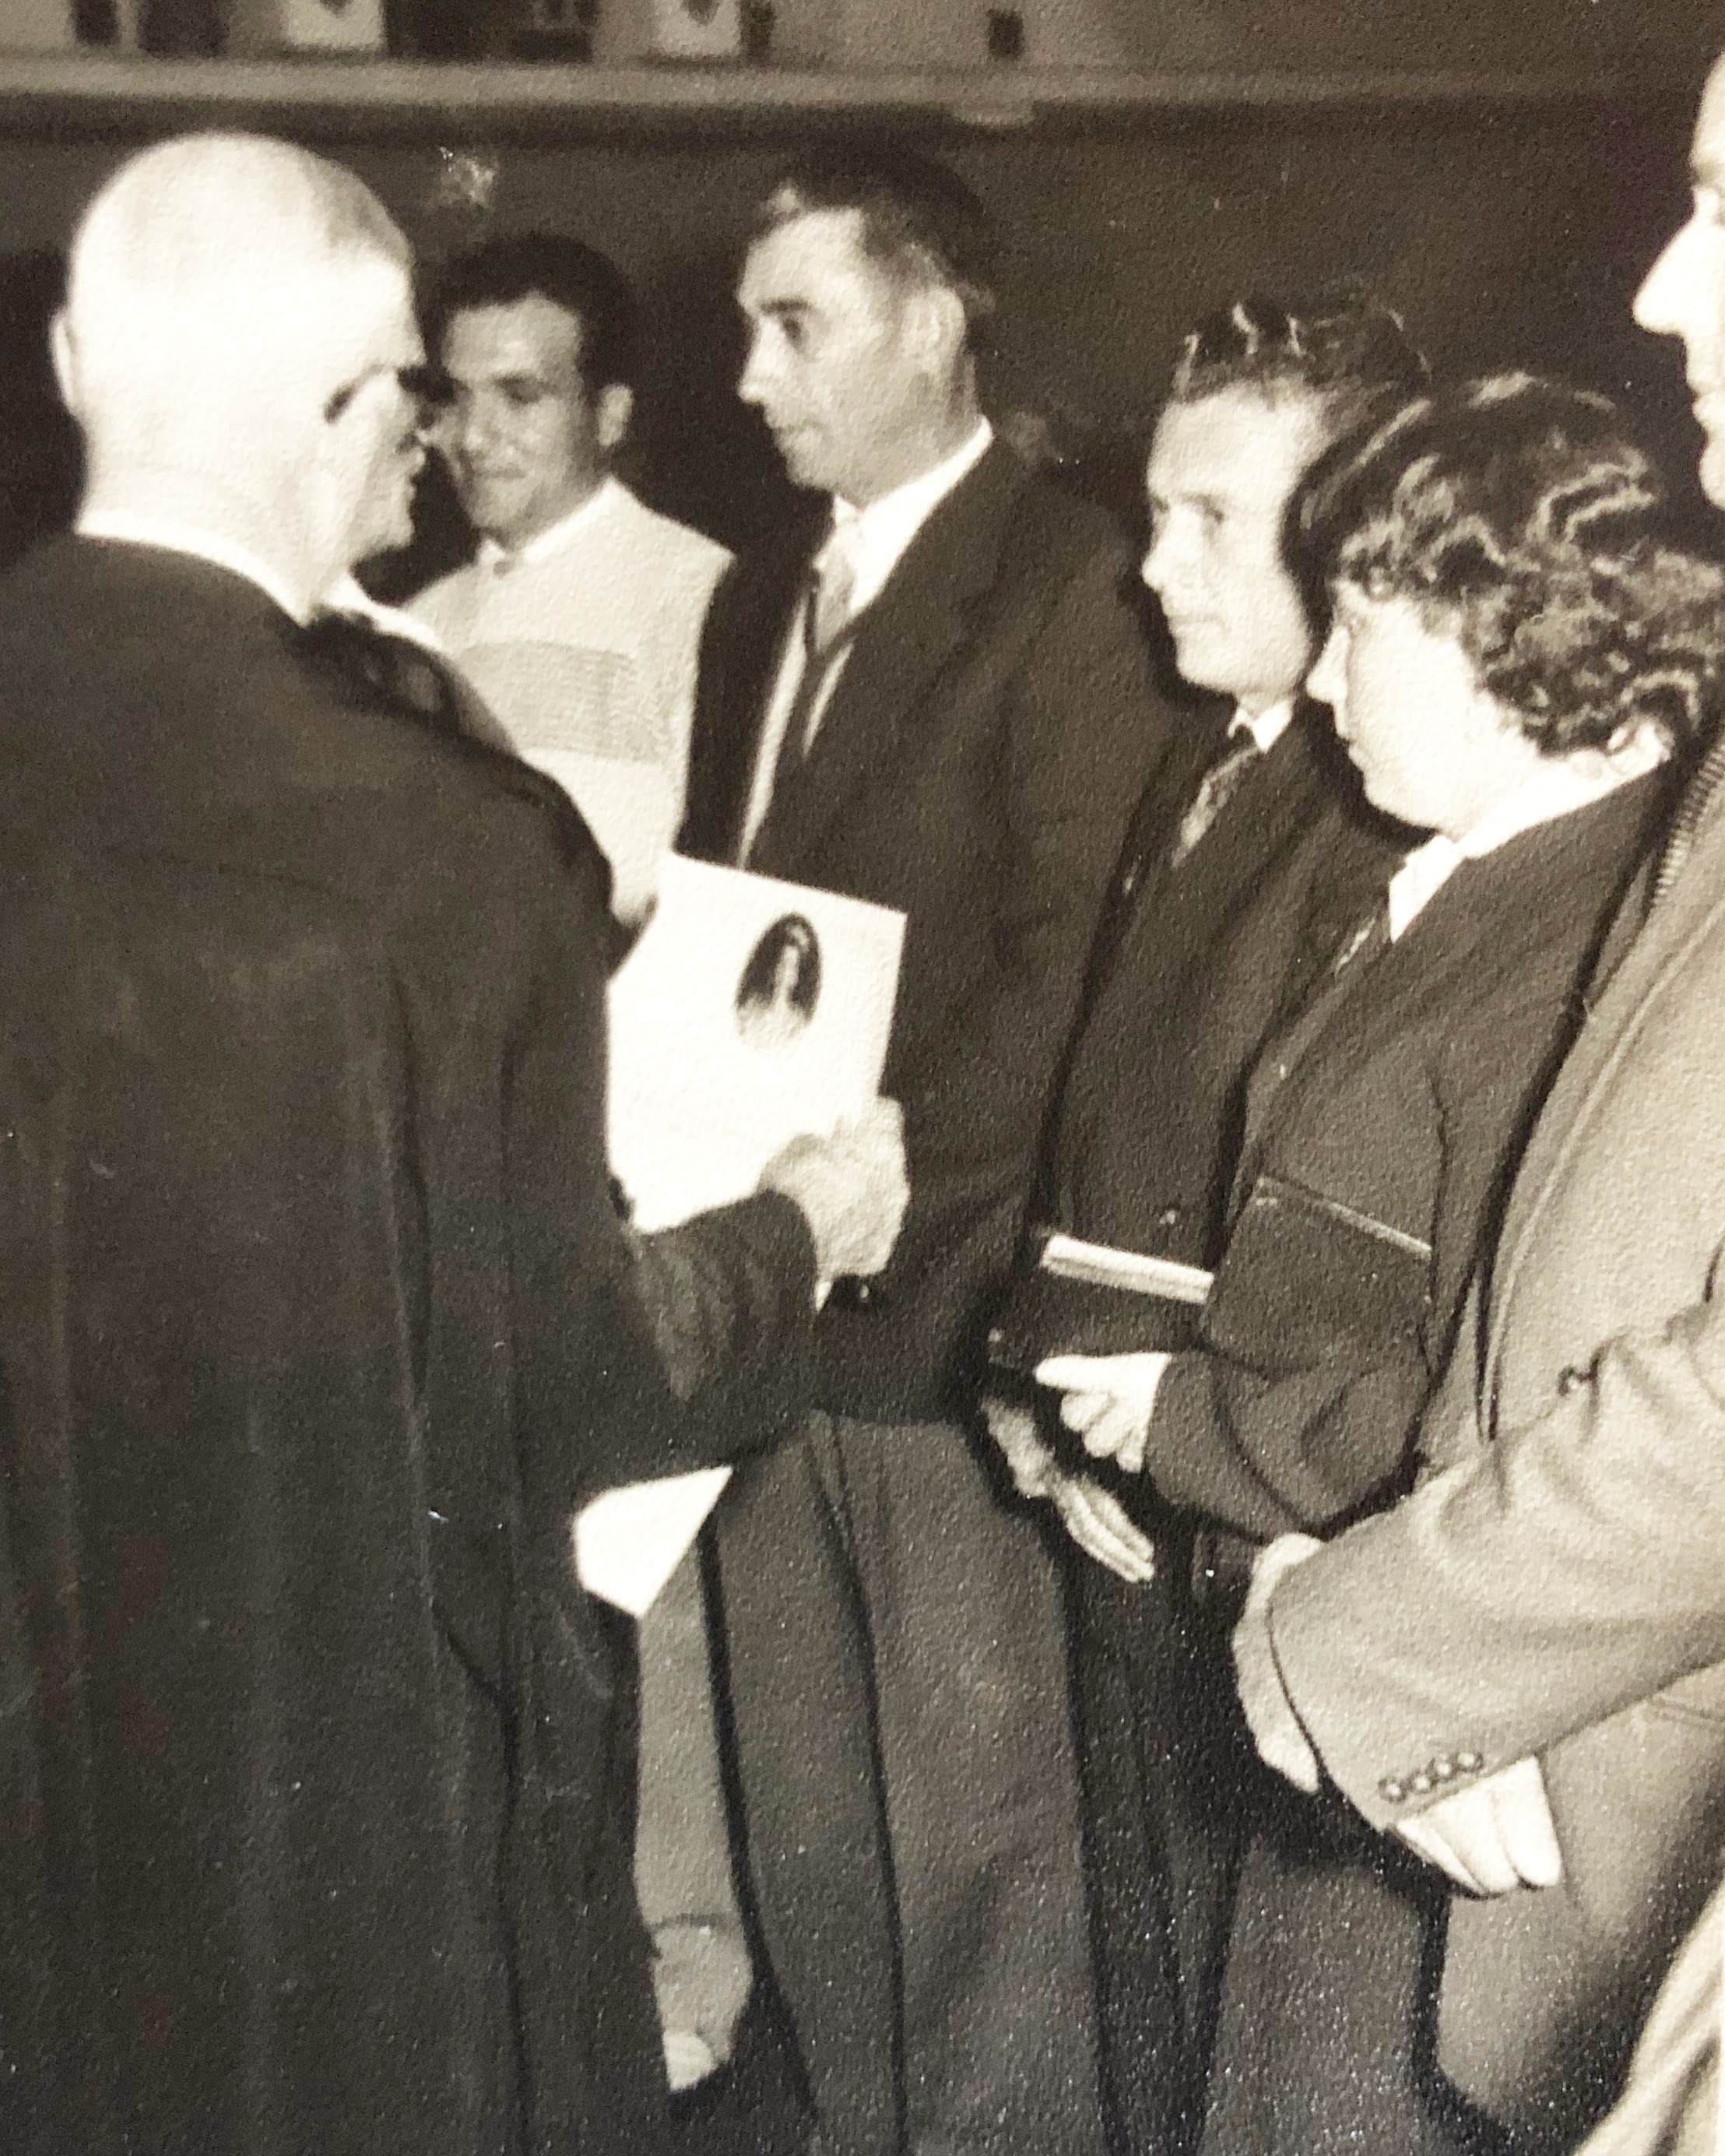 Nonno Giuseppe receiving his Australian Citizenship